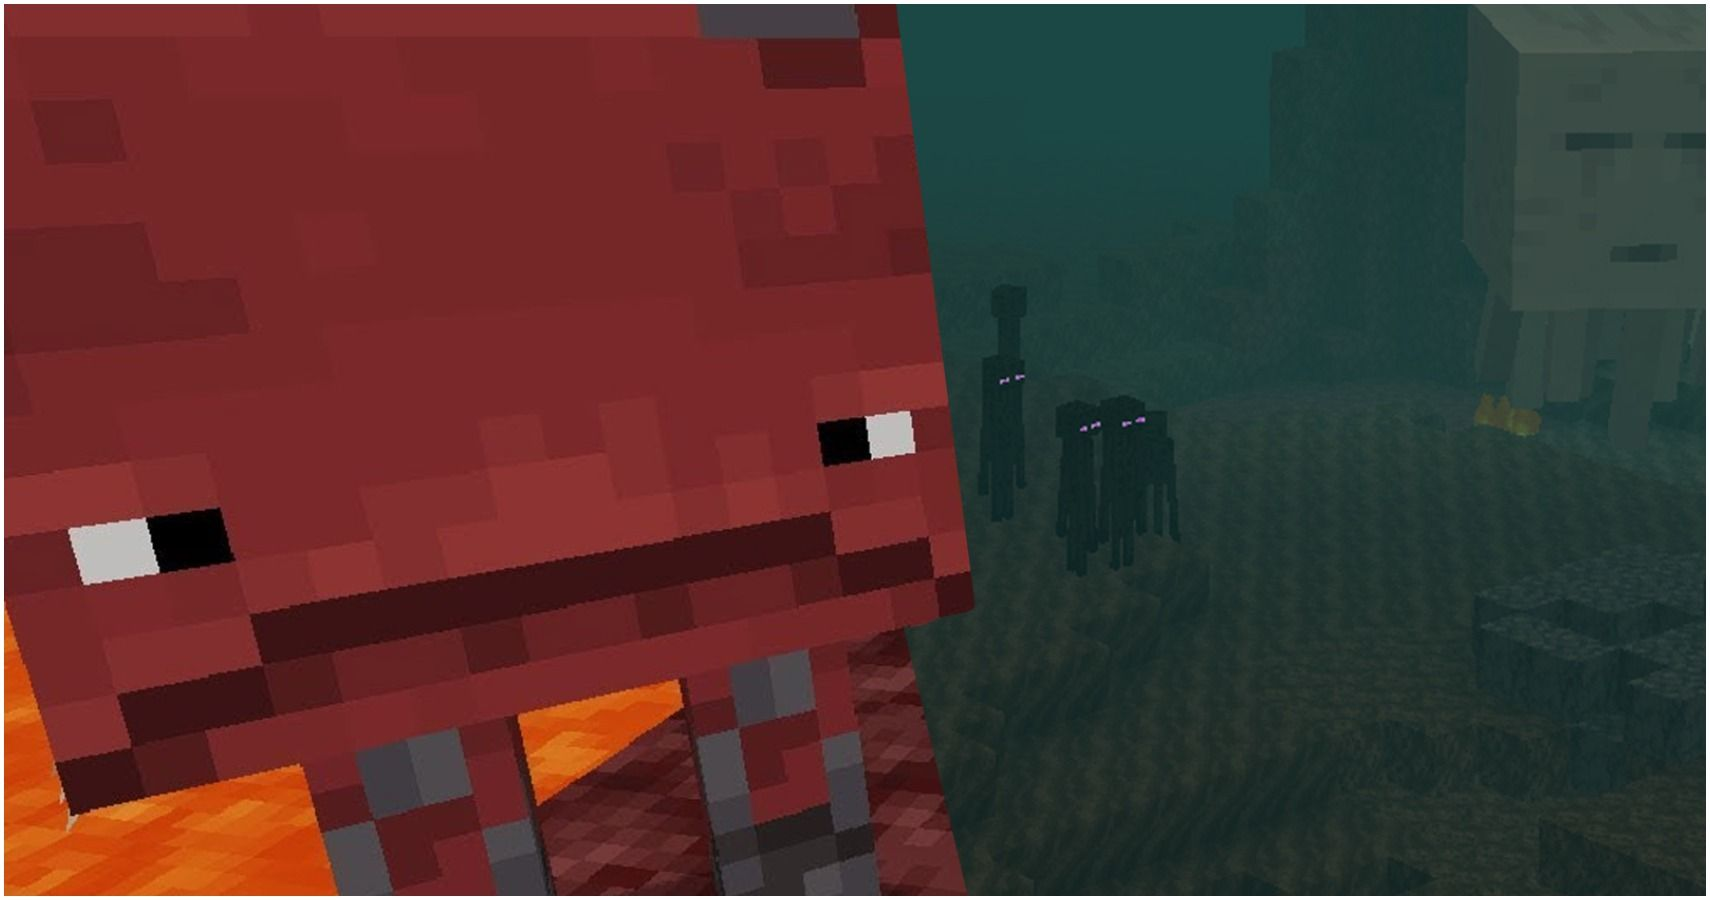 Minecraft 9 Things You Didn T Know You Could Do In The Nether Update Testing how fast you are on a boat on blue ice. the nether update